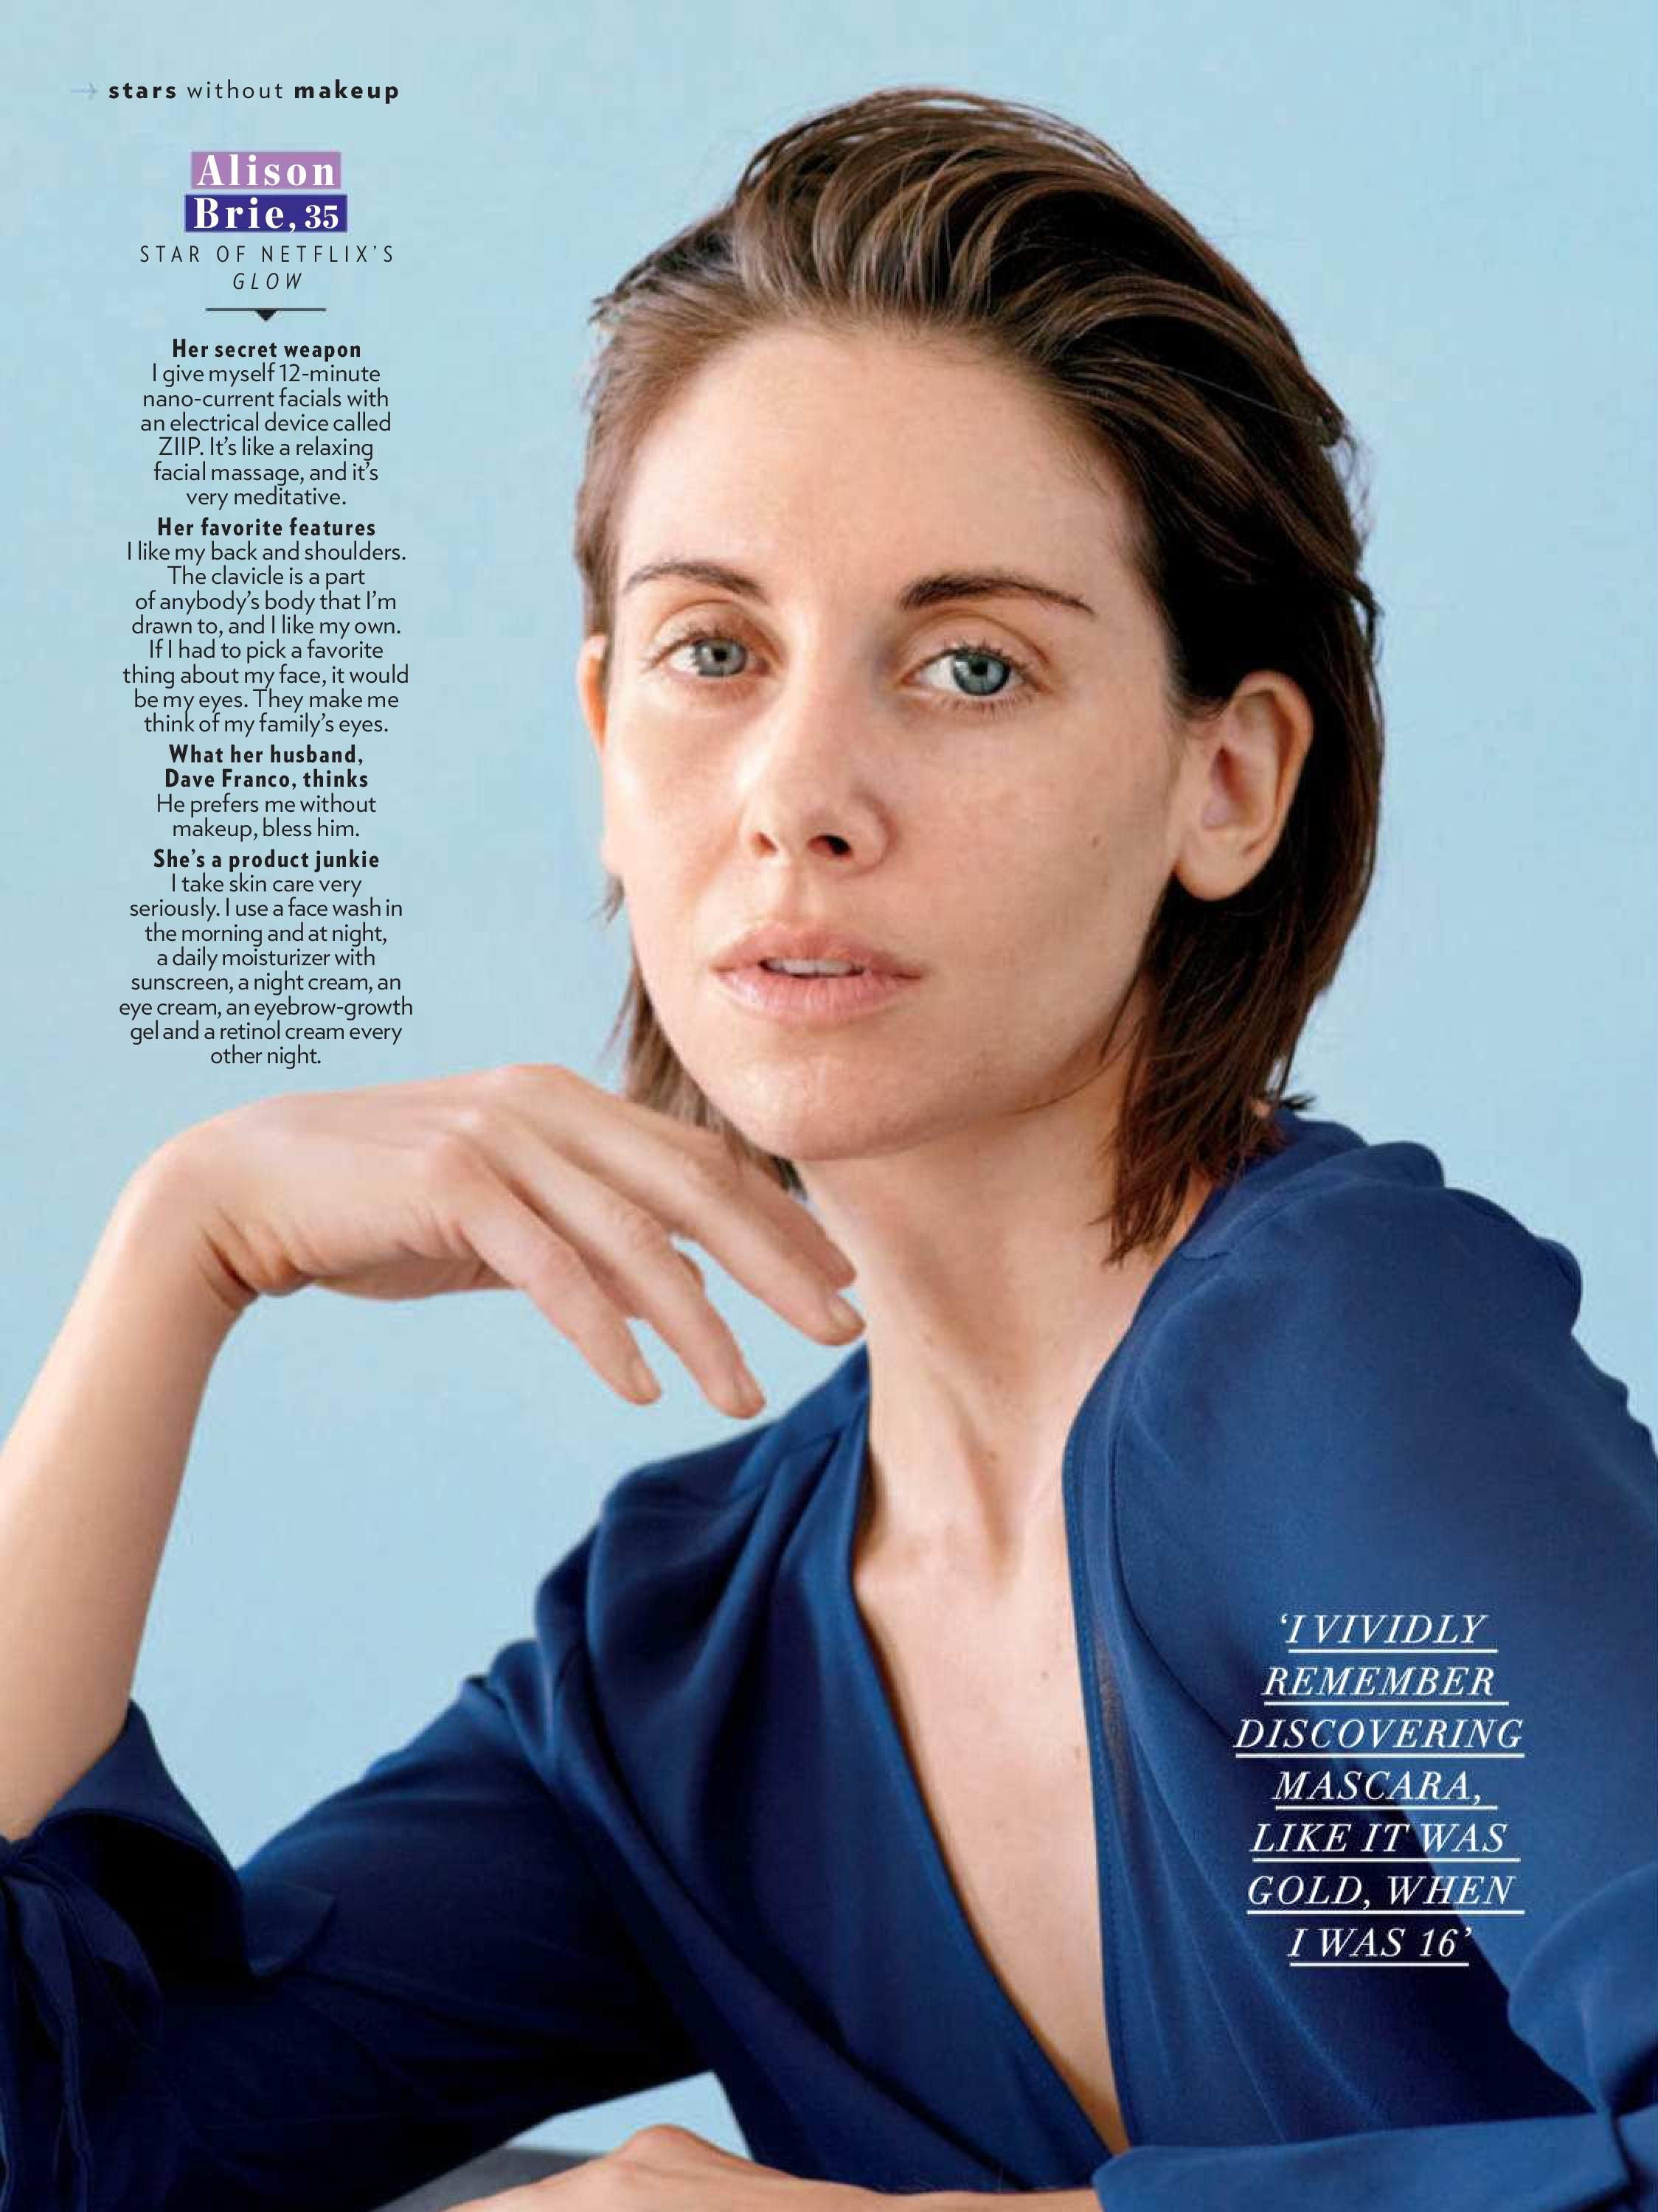 Alison Brie Sex Scandal no makeup | alison brie, brie, most beautiful people